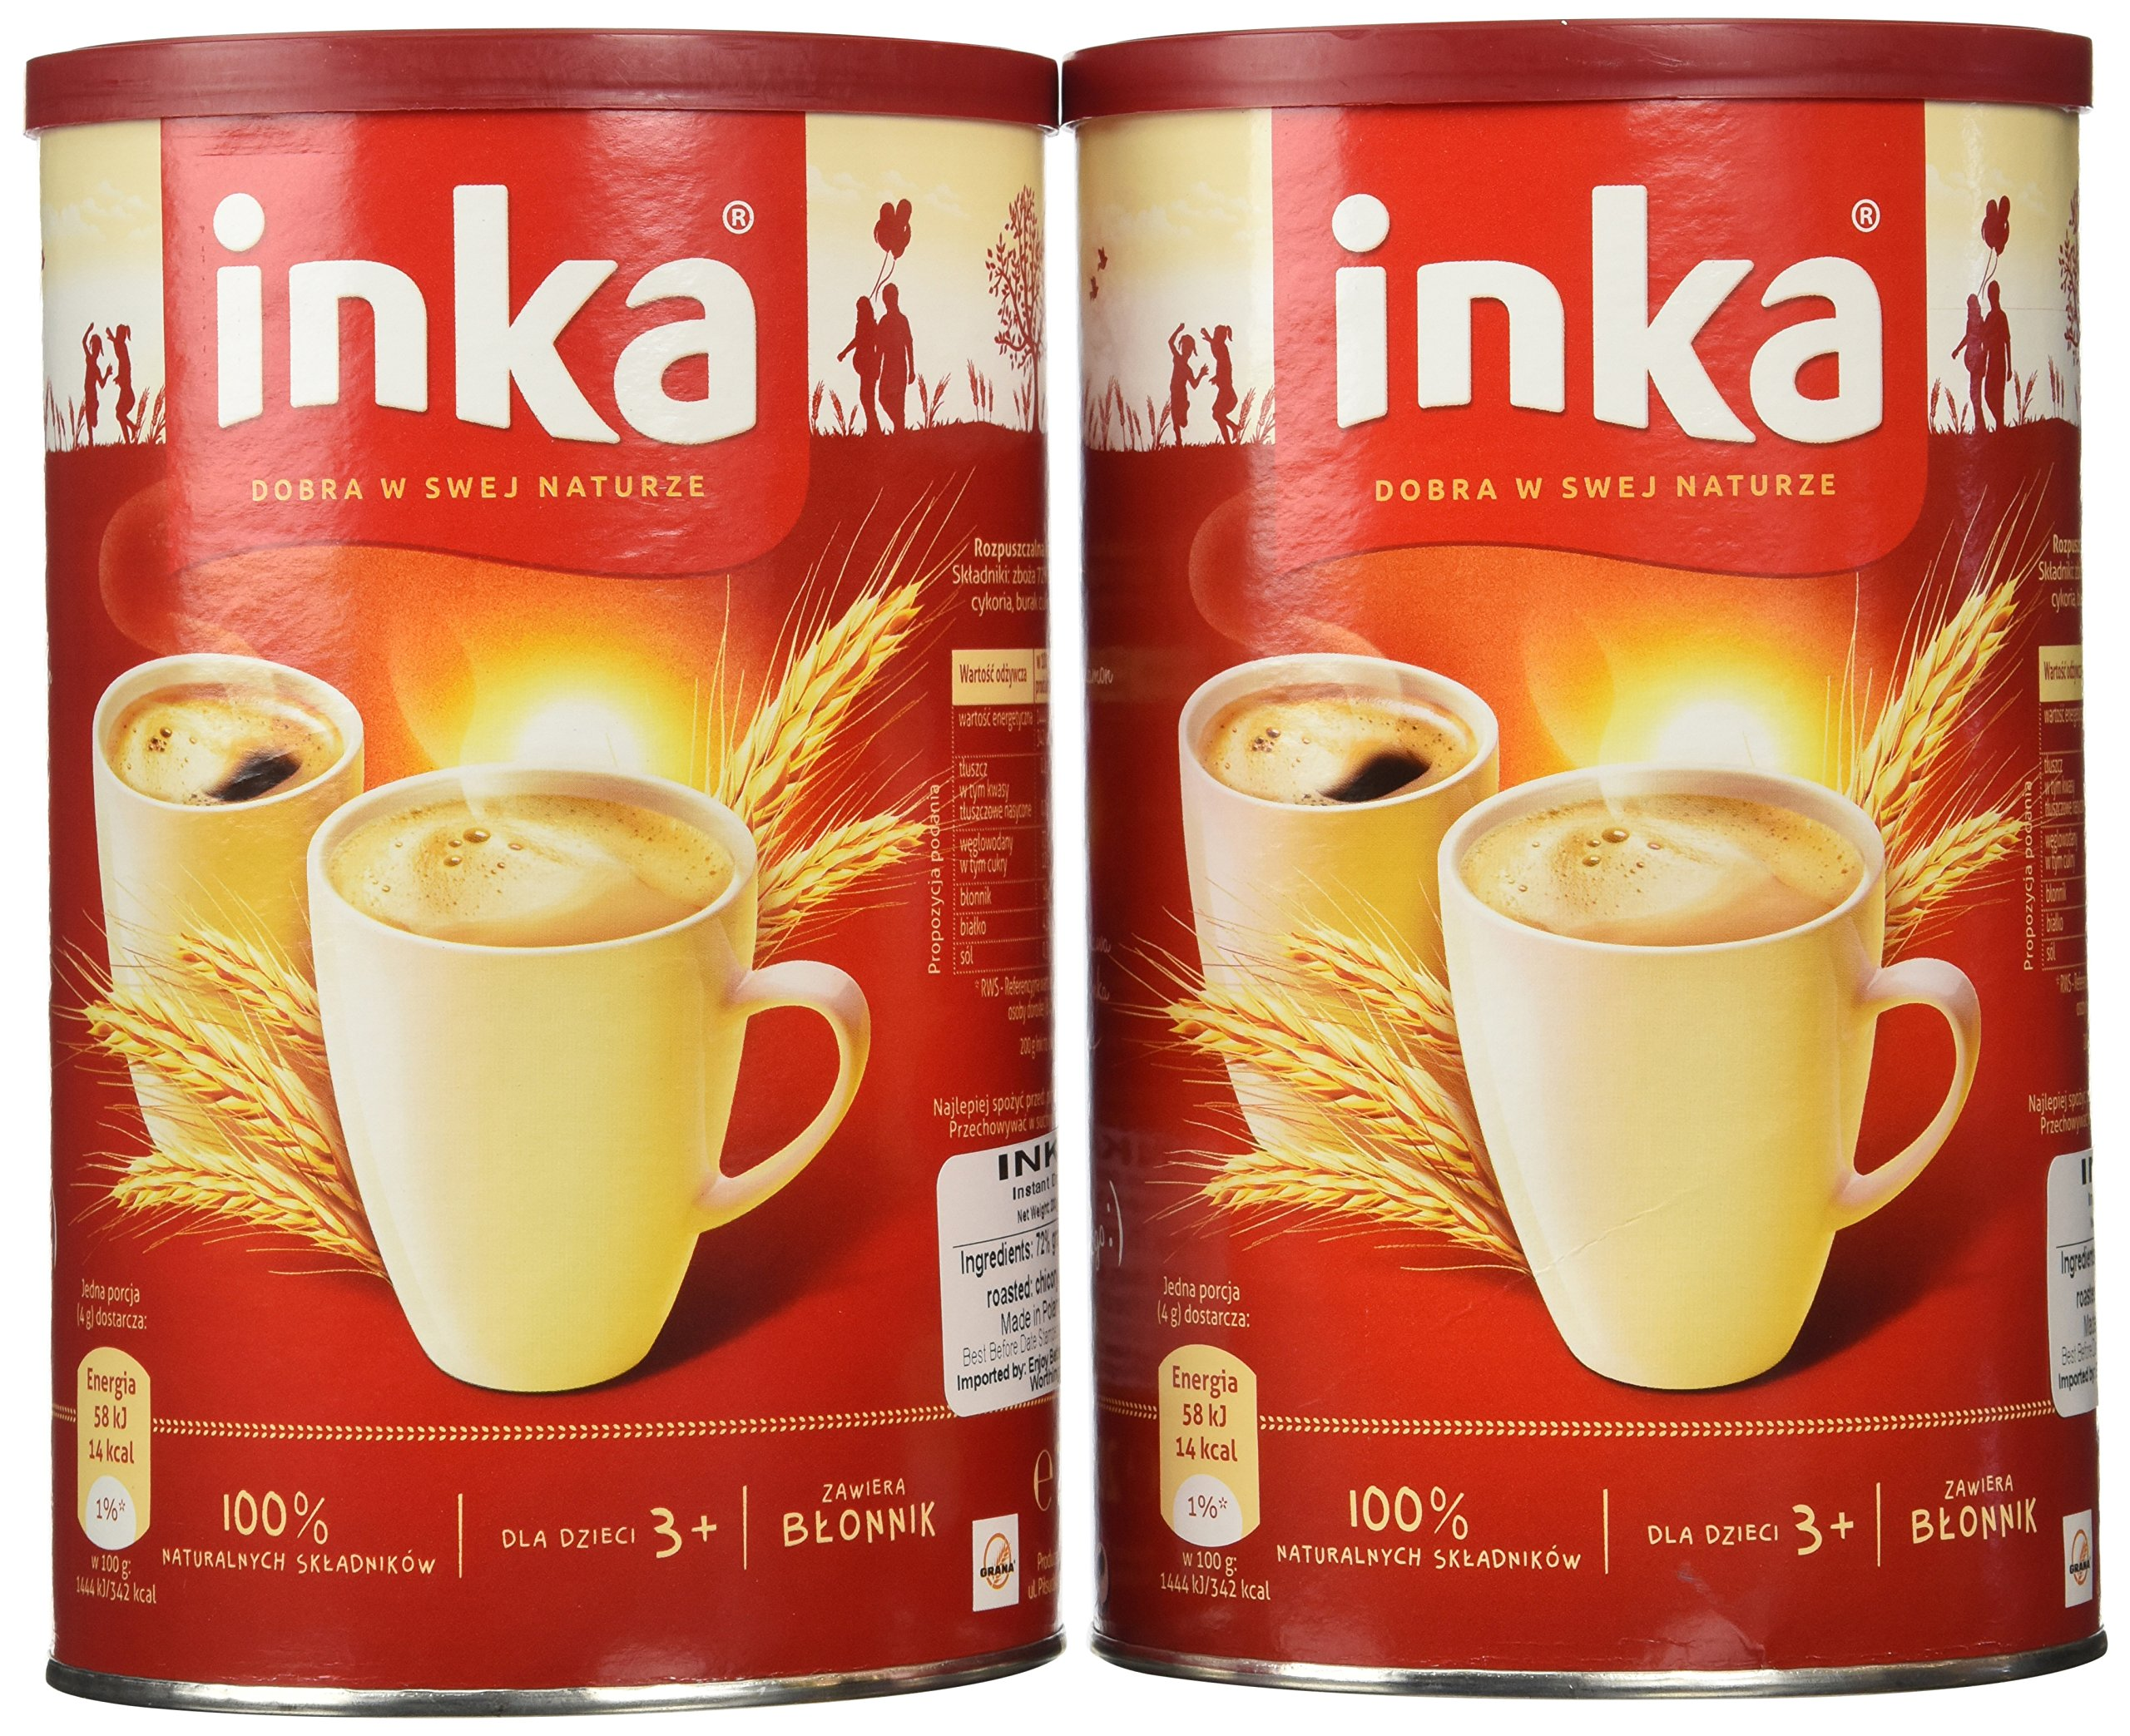 Inka 2 Cans of Instant Grain Coffee Drink 7oz Each by Inka Corp.